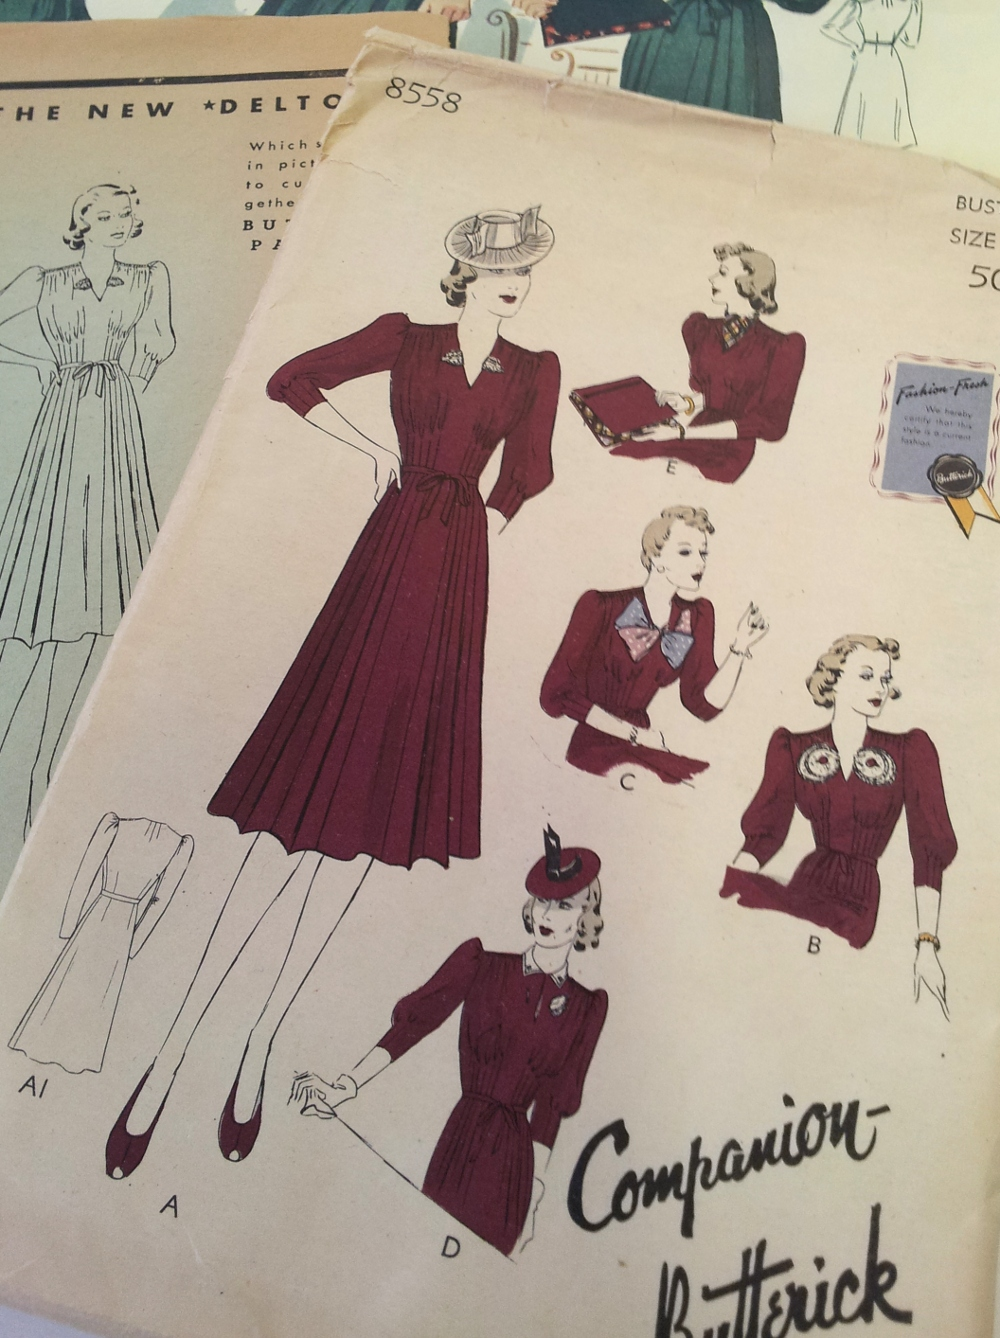 1940s Butterick home sewing pattern and VintageFollies